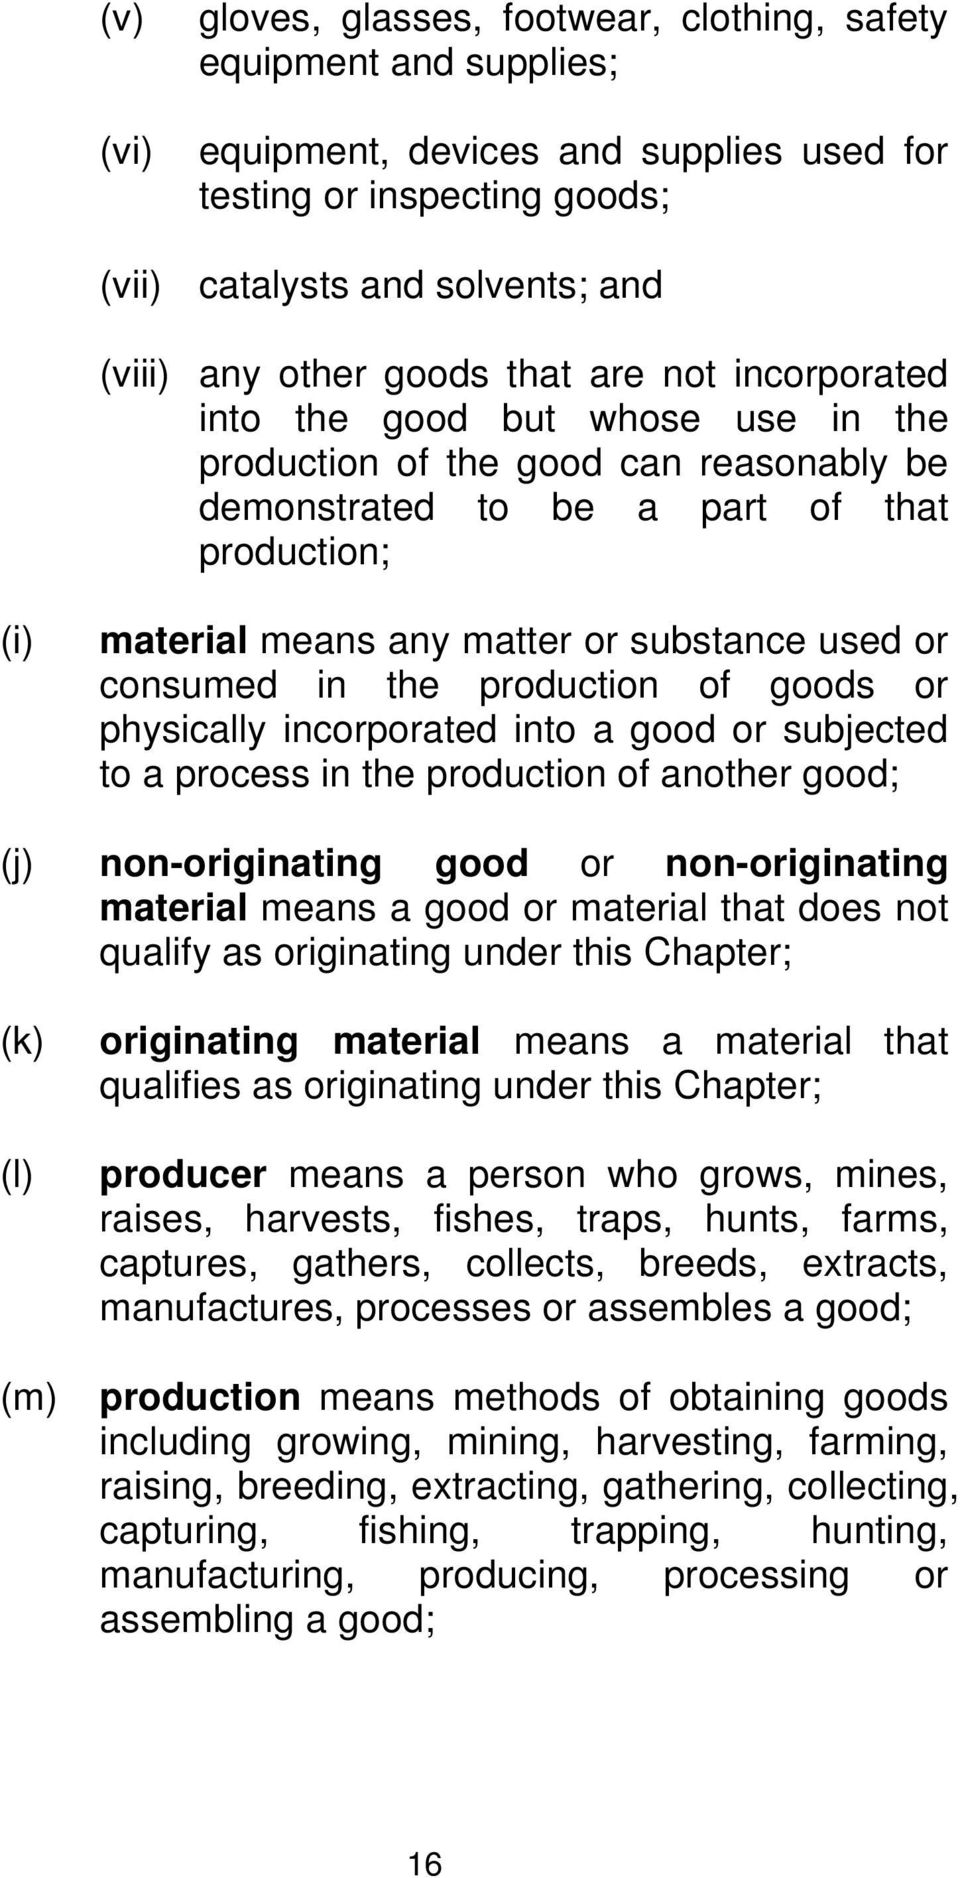 used or consumed in the production of goods or physically incorporated into a good or subjected to a process in the production of another good; (j) non-originating good or non-originating material